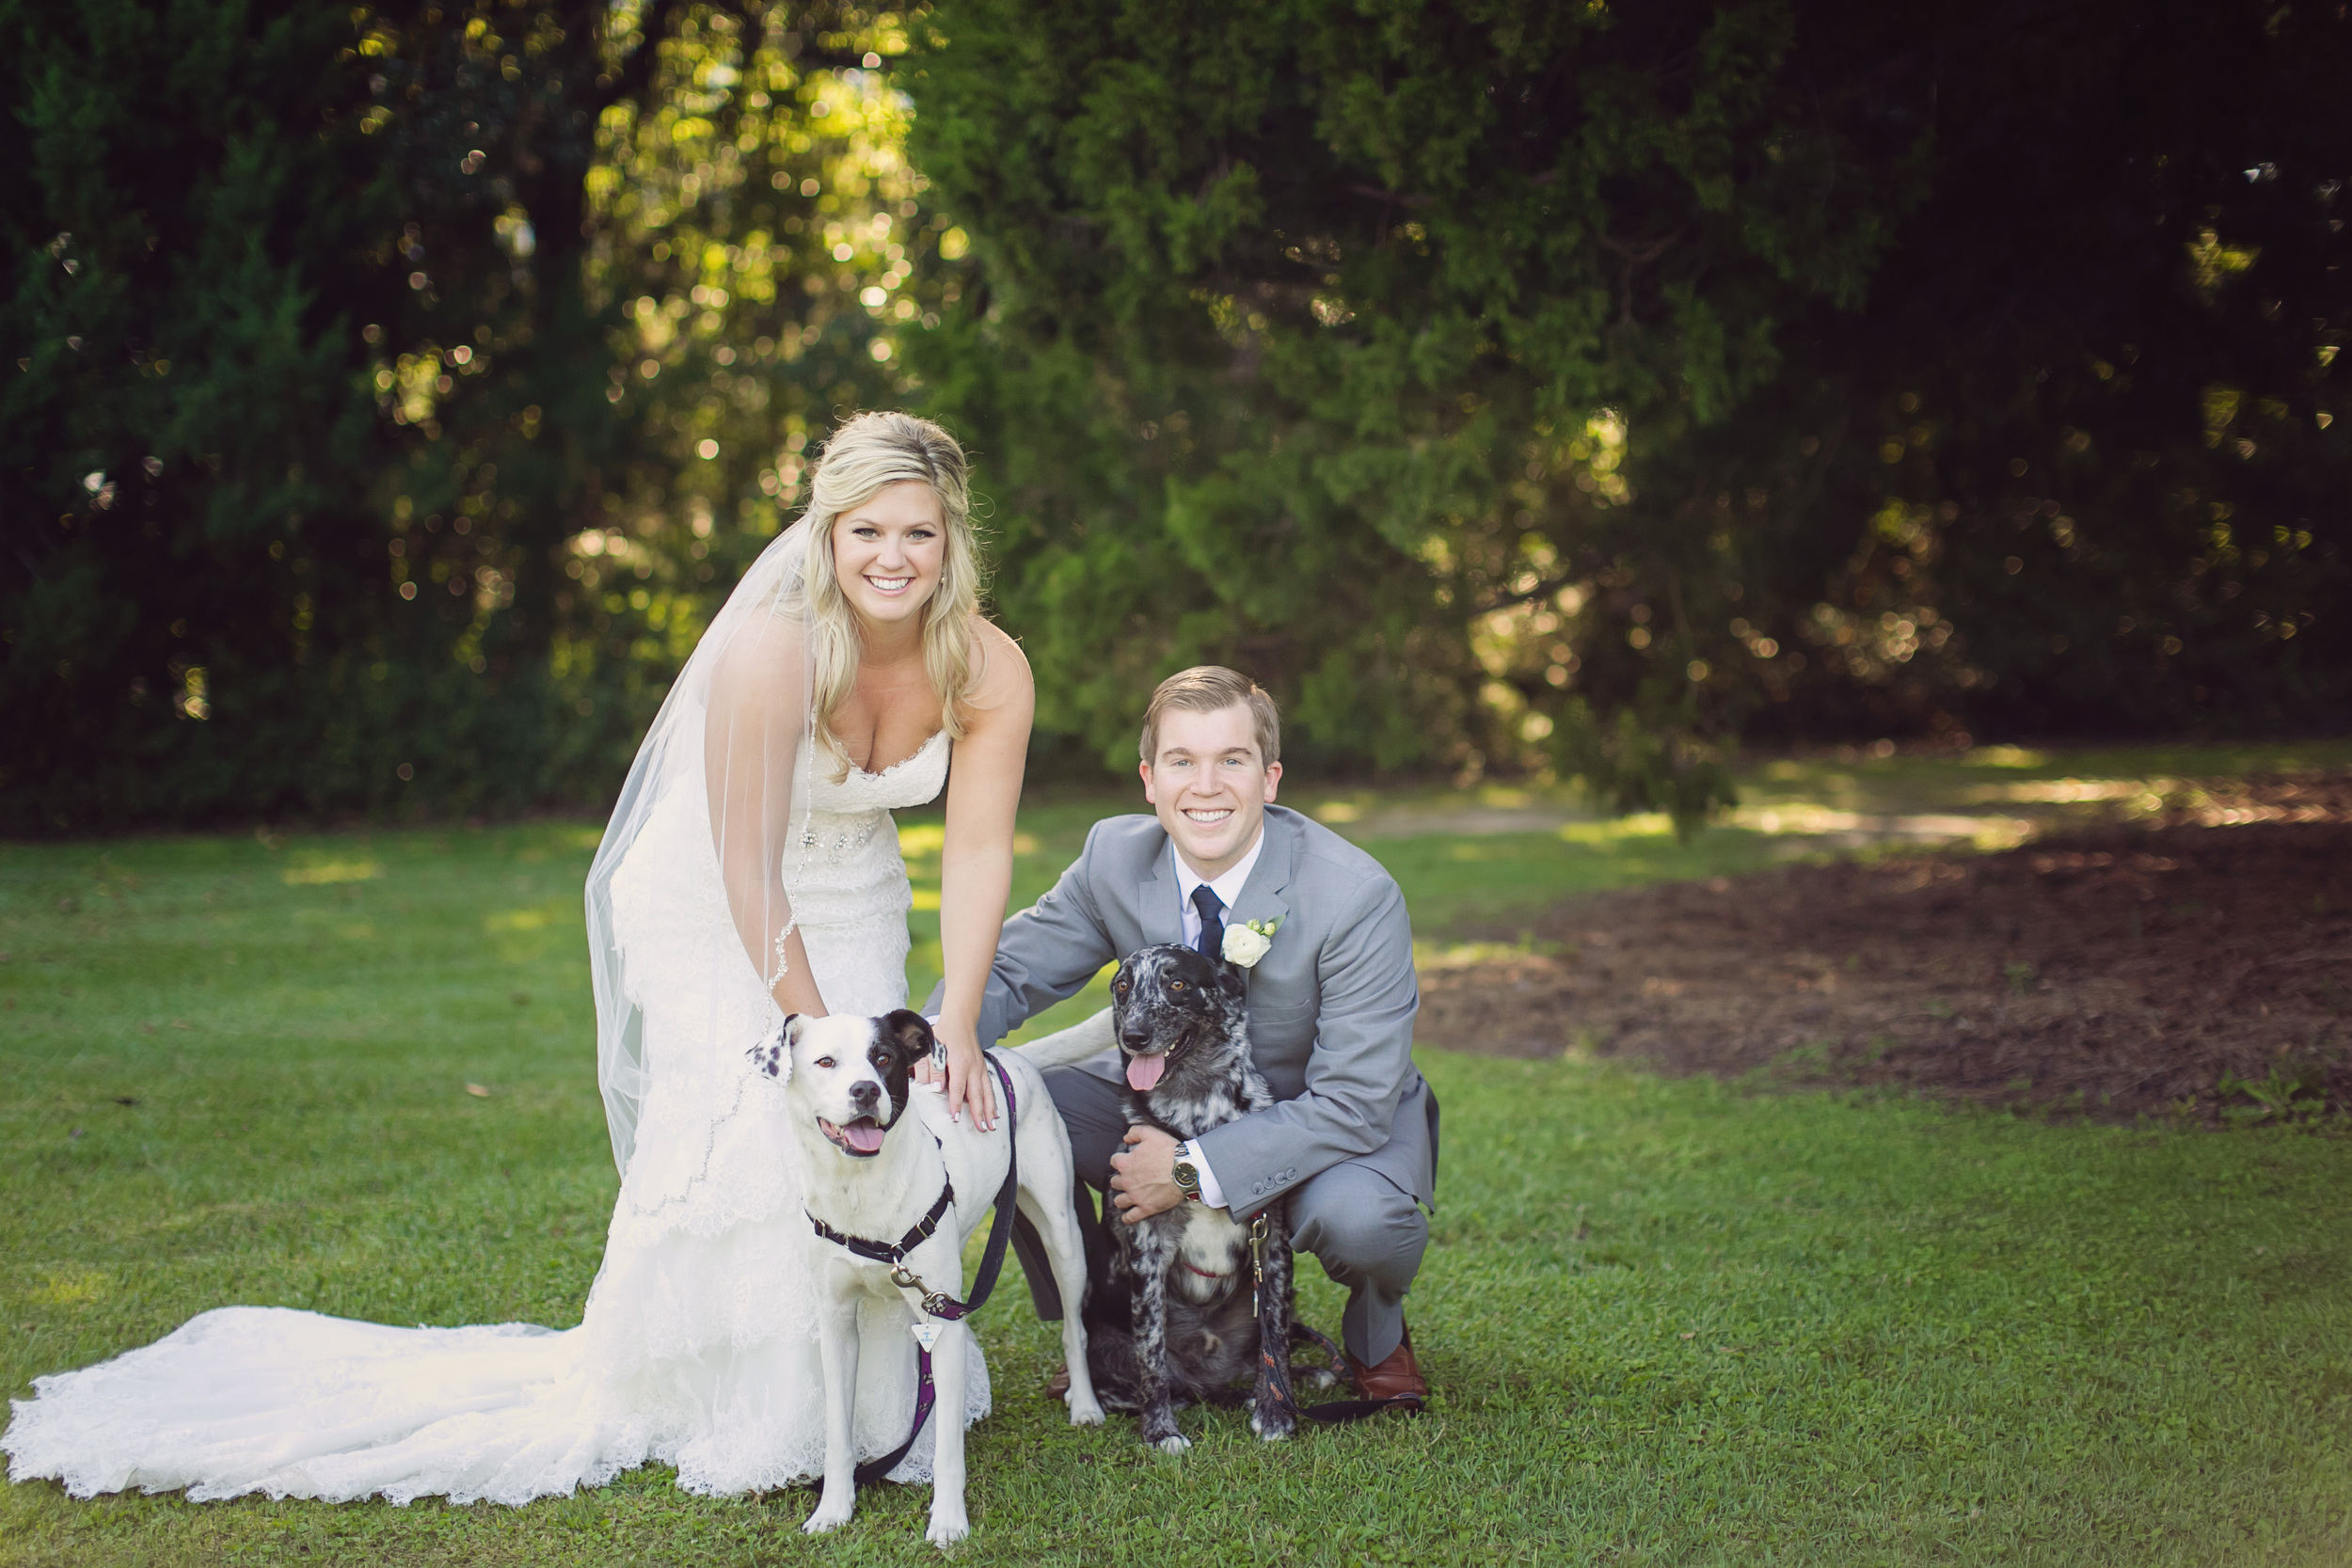 Hannah + Andy's Island House wedding with their dogs in  Charlesotn, SC by Rebecca Keeling Photography